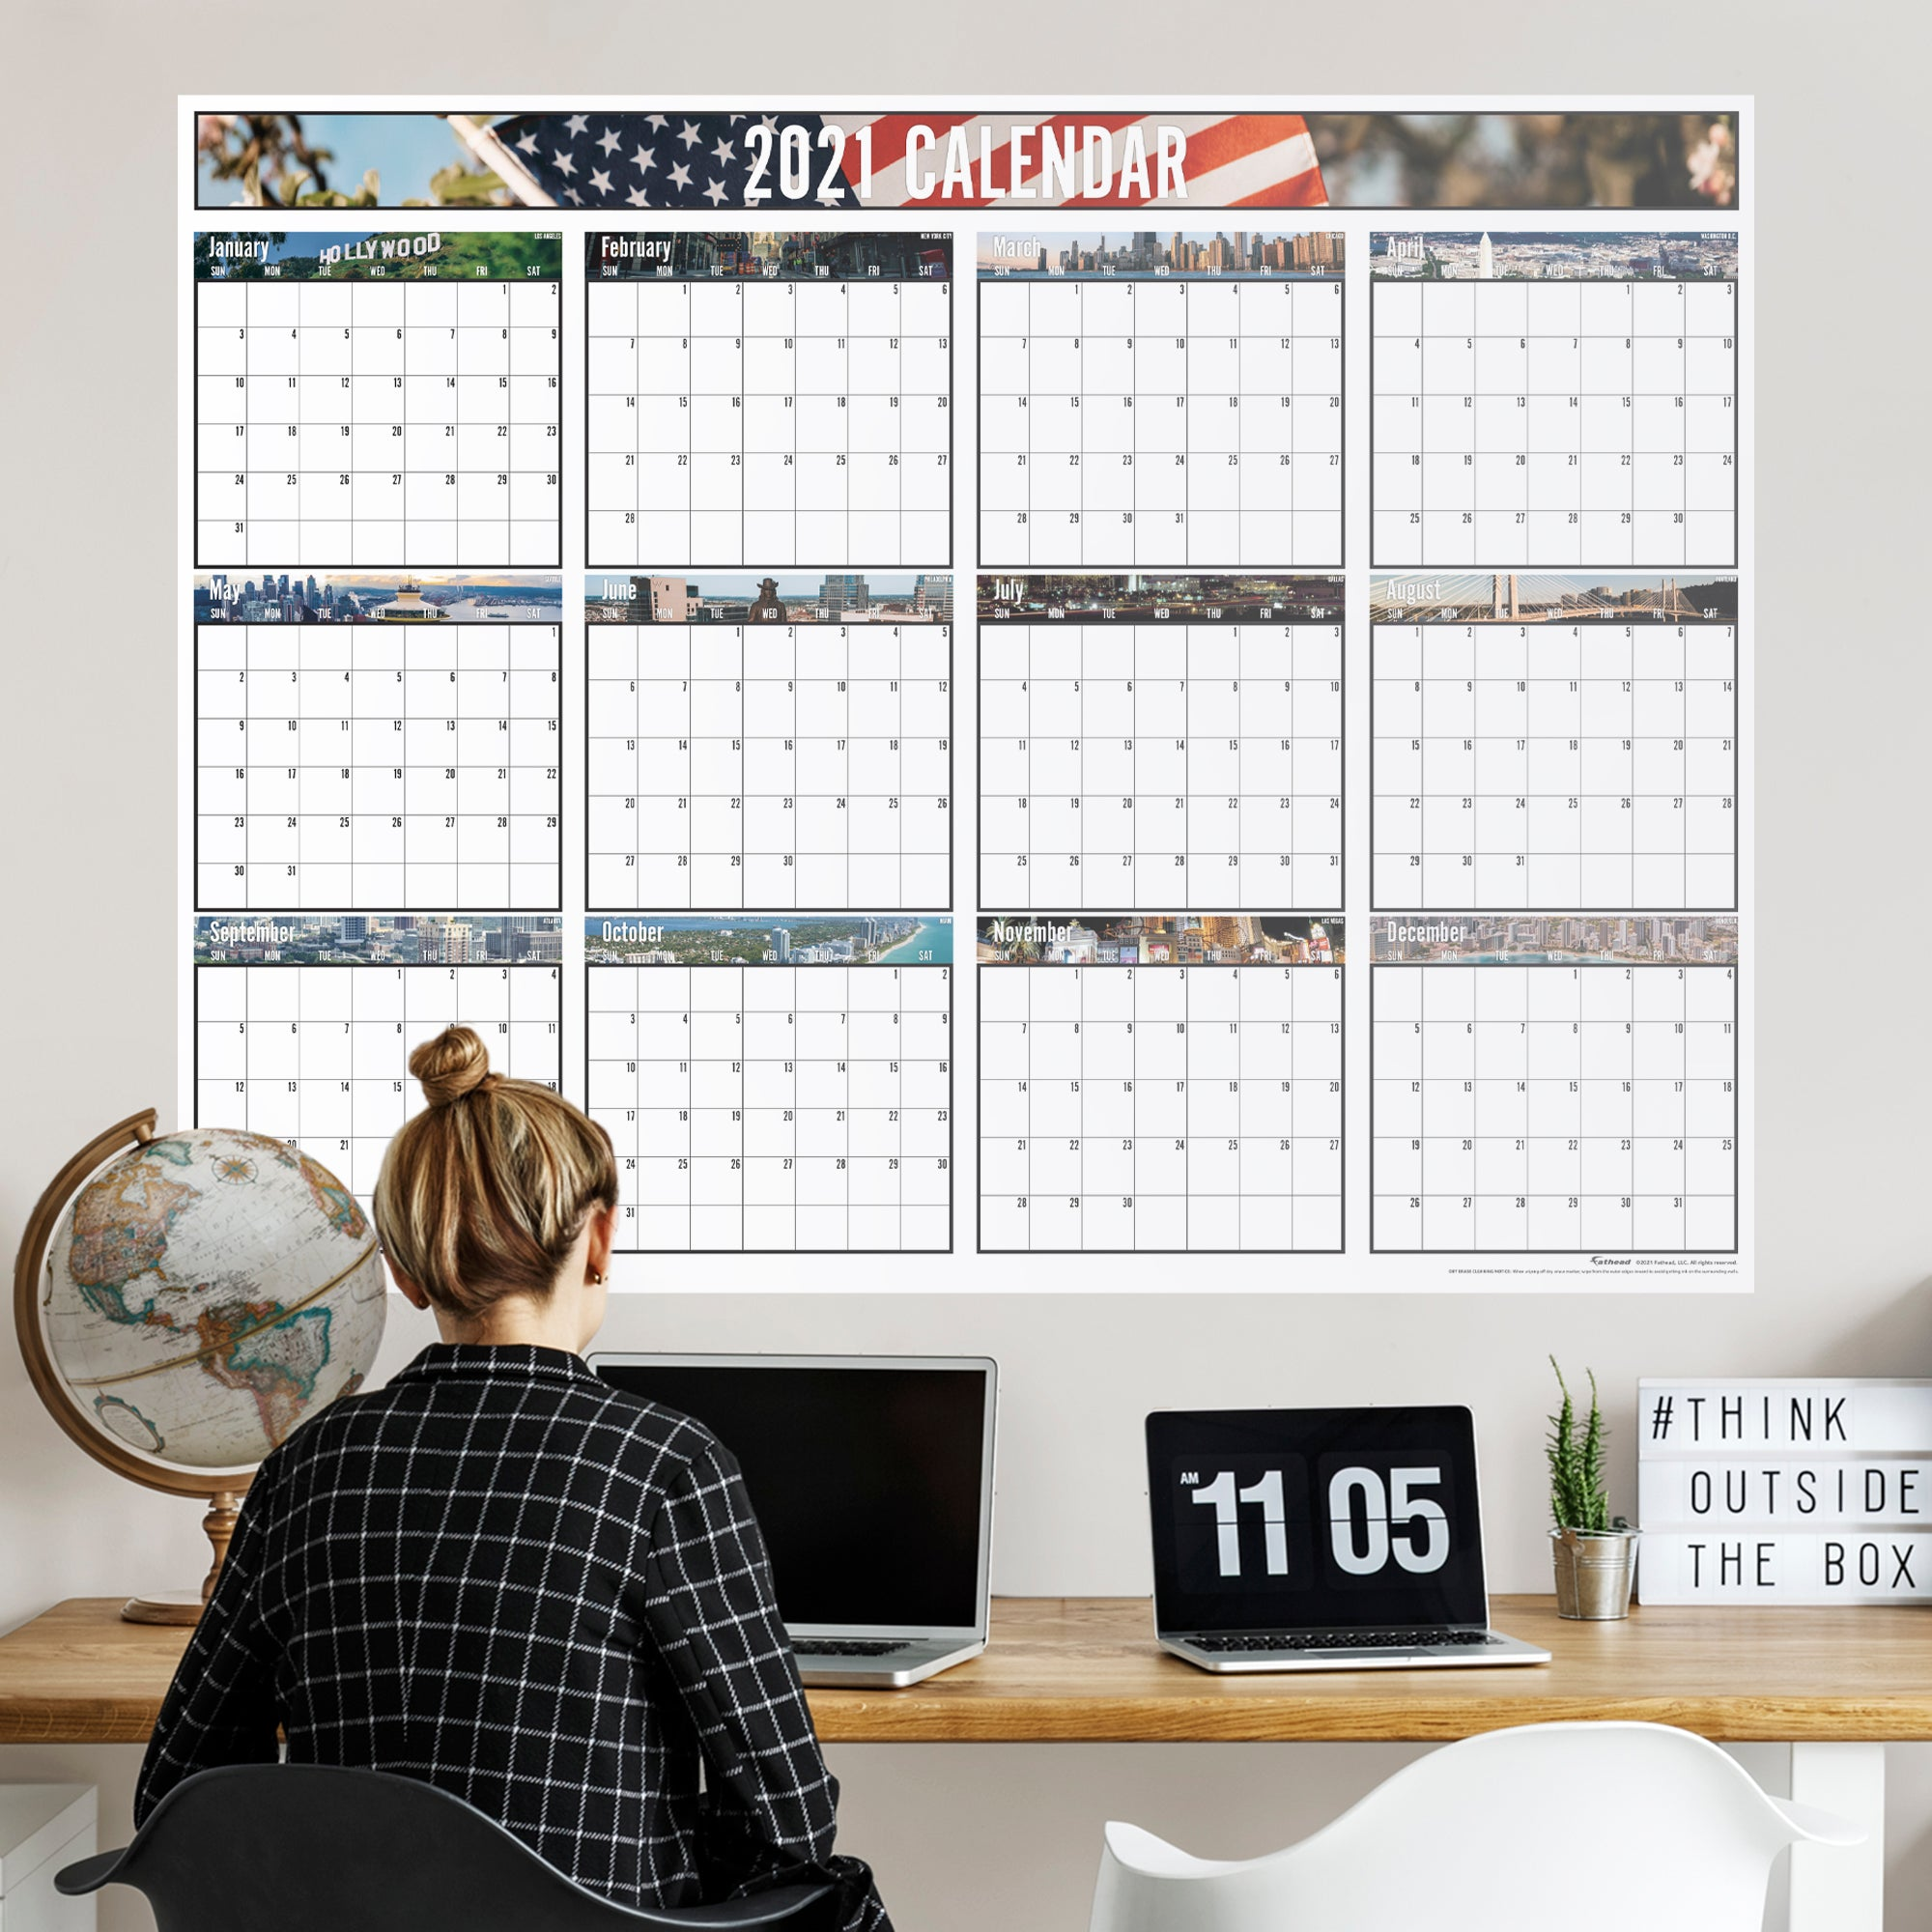 """2021 CITIES Dry Erase Calendar - Removable Wall Decal Giant Decal ( 54"""" W x 40"""" H) by Fathead   Vinyl"""